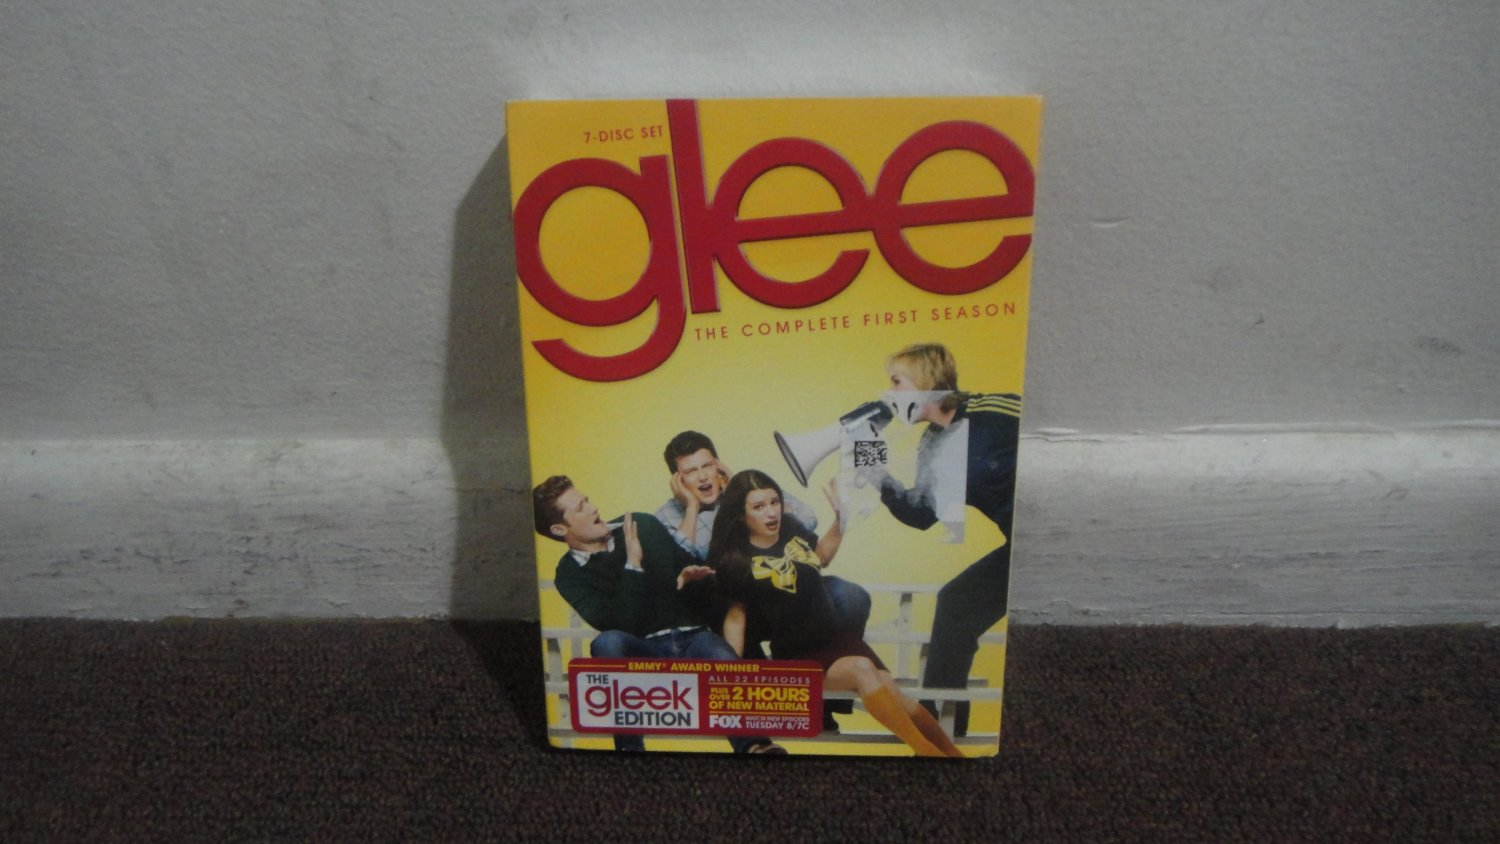 glee - DVD: The Complete First Season, Season One, Brand New, Sealed. LOOK!!!